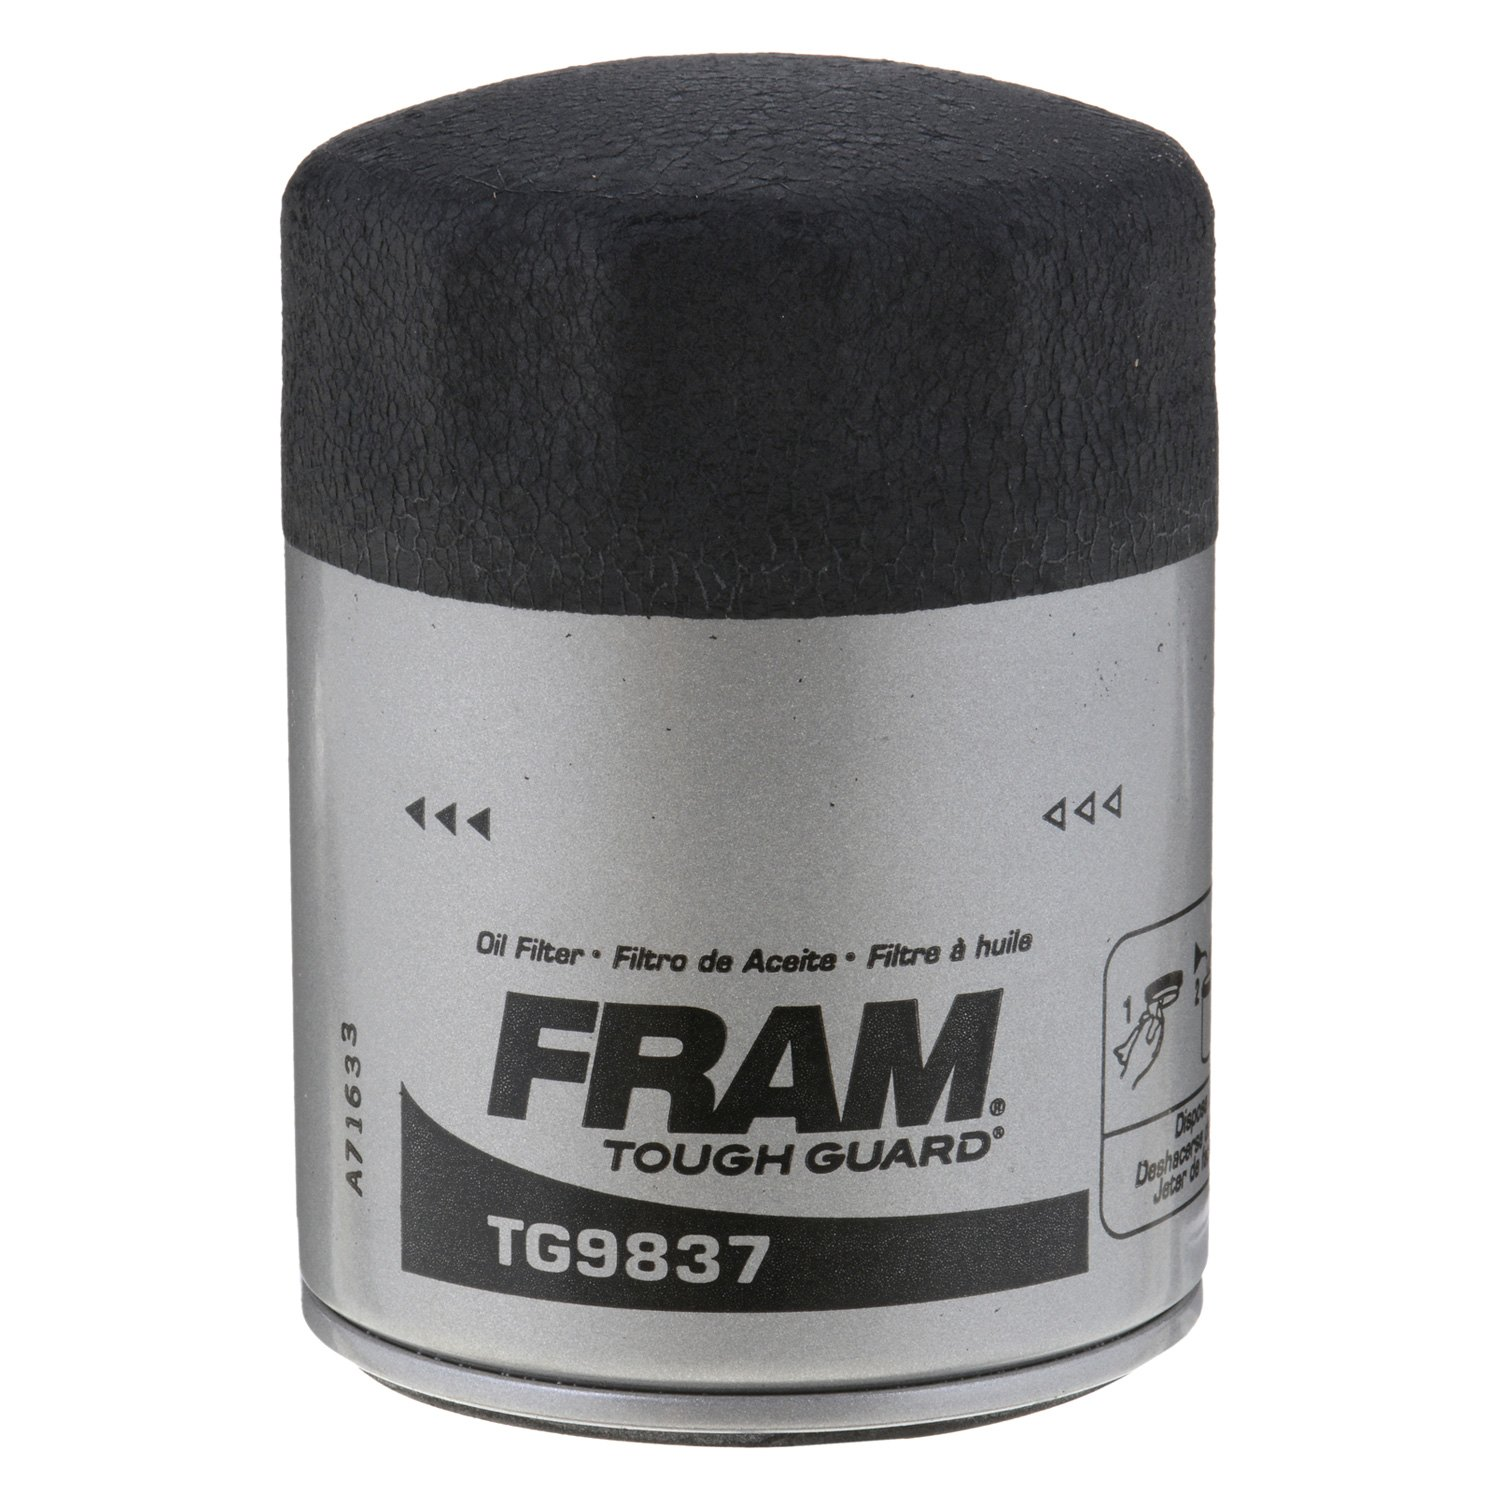 WRG-7489] 2007 Chevy Trailblazer Fuel Filter